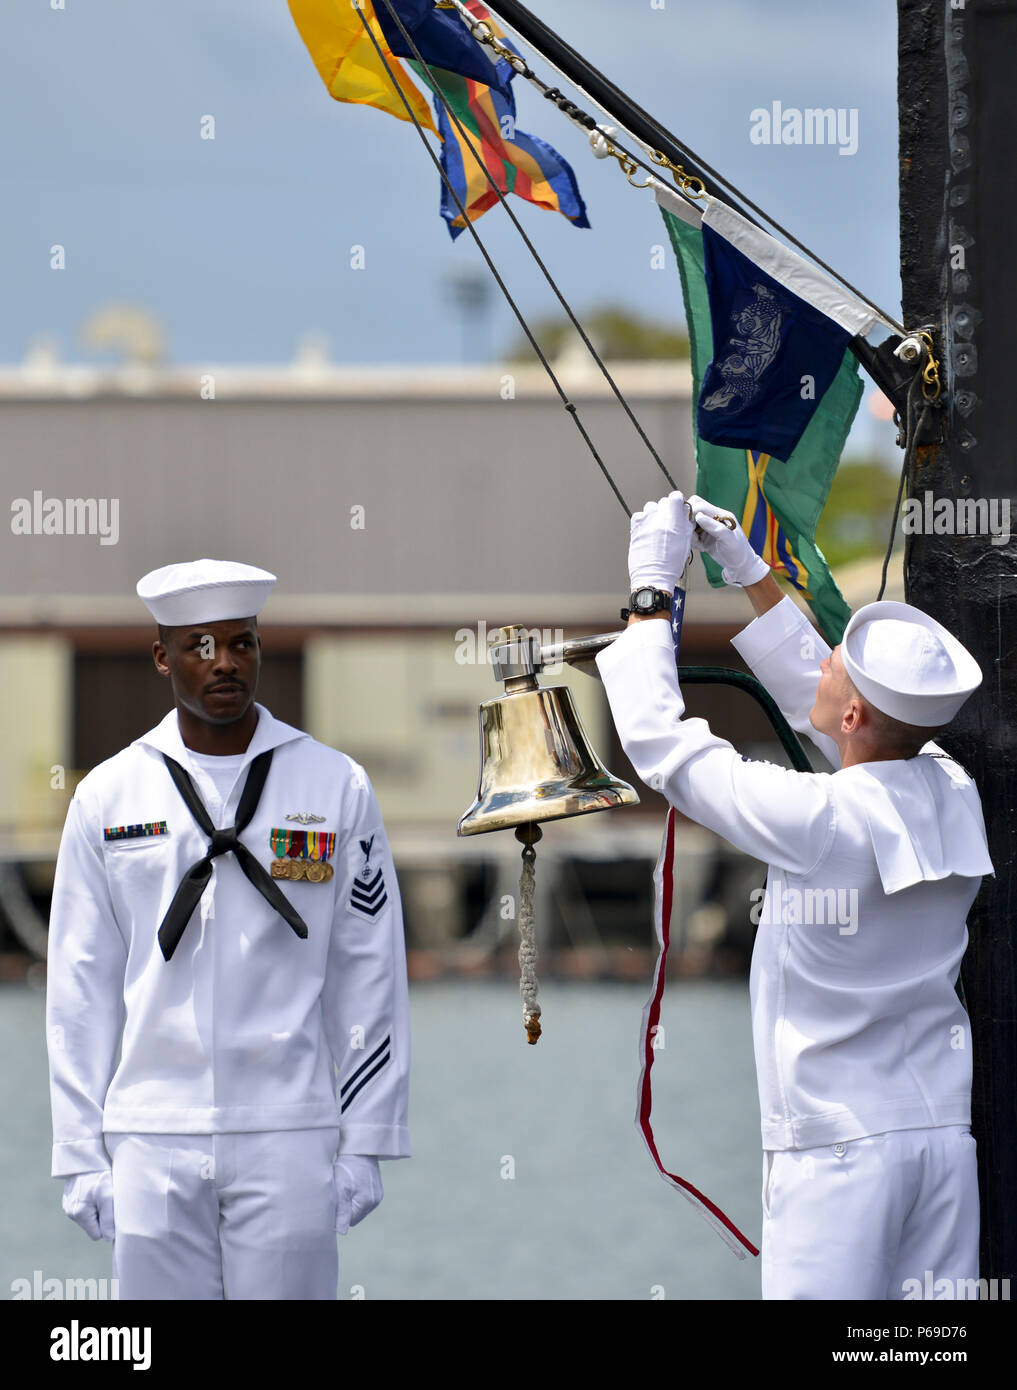 160530-N-LY160-379 JOINT BASE PEARL HARBOR-HICKAM, Hawaii (May 30, 2016) Sailors assigned to Los Angeles-class fast-attack submarine USS City of Corpus Christi (SSN 705) strike the commissioning pennant during a Memorial Day decommissioning ceremony at Joint Base Pearl Harbor-Hickam. City of Corpus Christi concluded 33 years of service as the second U.S. warship to be named after Corpus Christi, Texas. (U.S. Navy photo by Mass Communication Specialist 2nd Class Michael H. Lee) - Stock Image